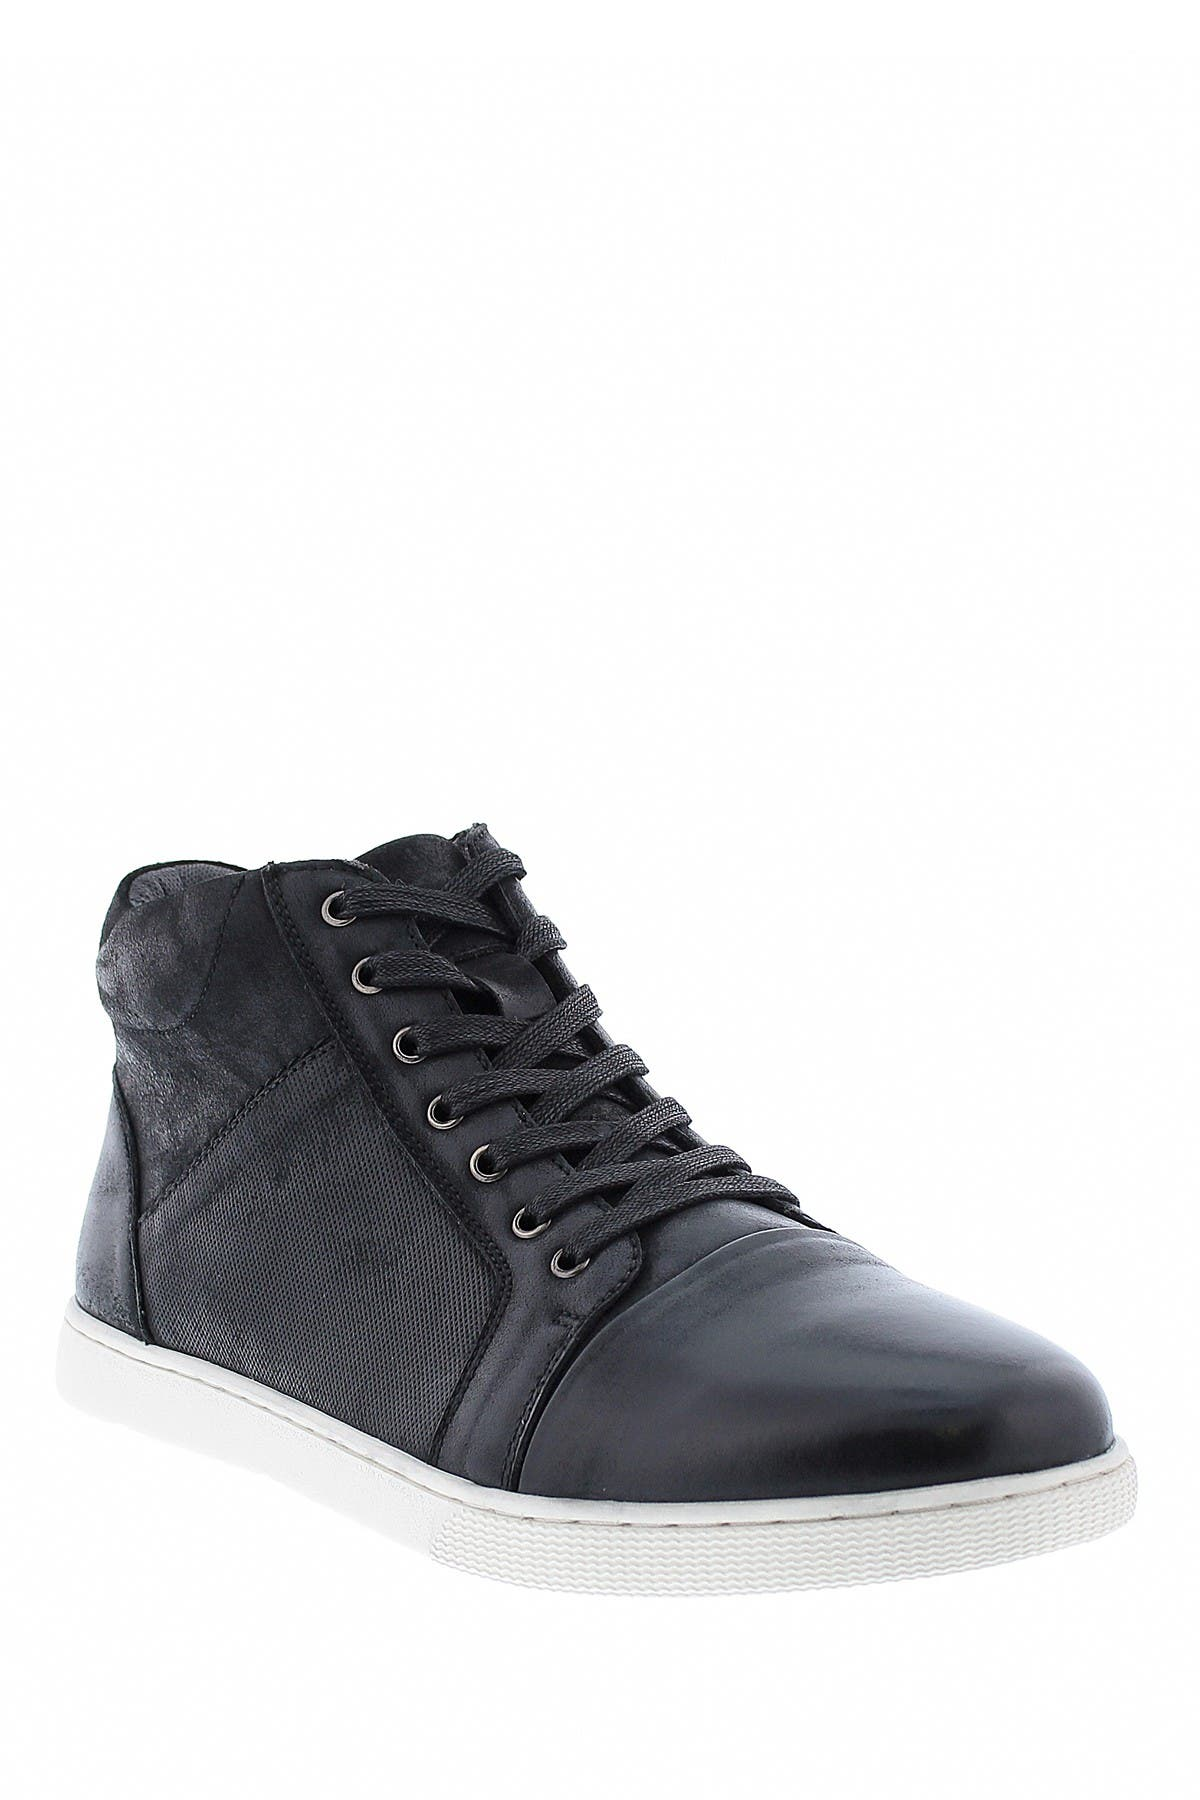 English Laundry Vail Sneaker In Black